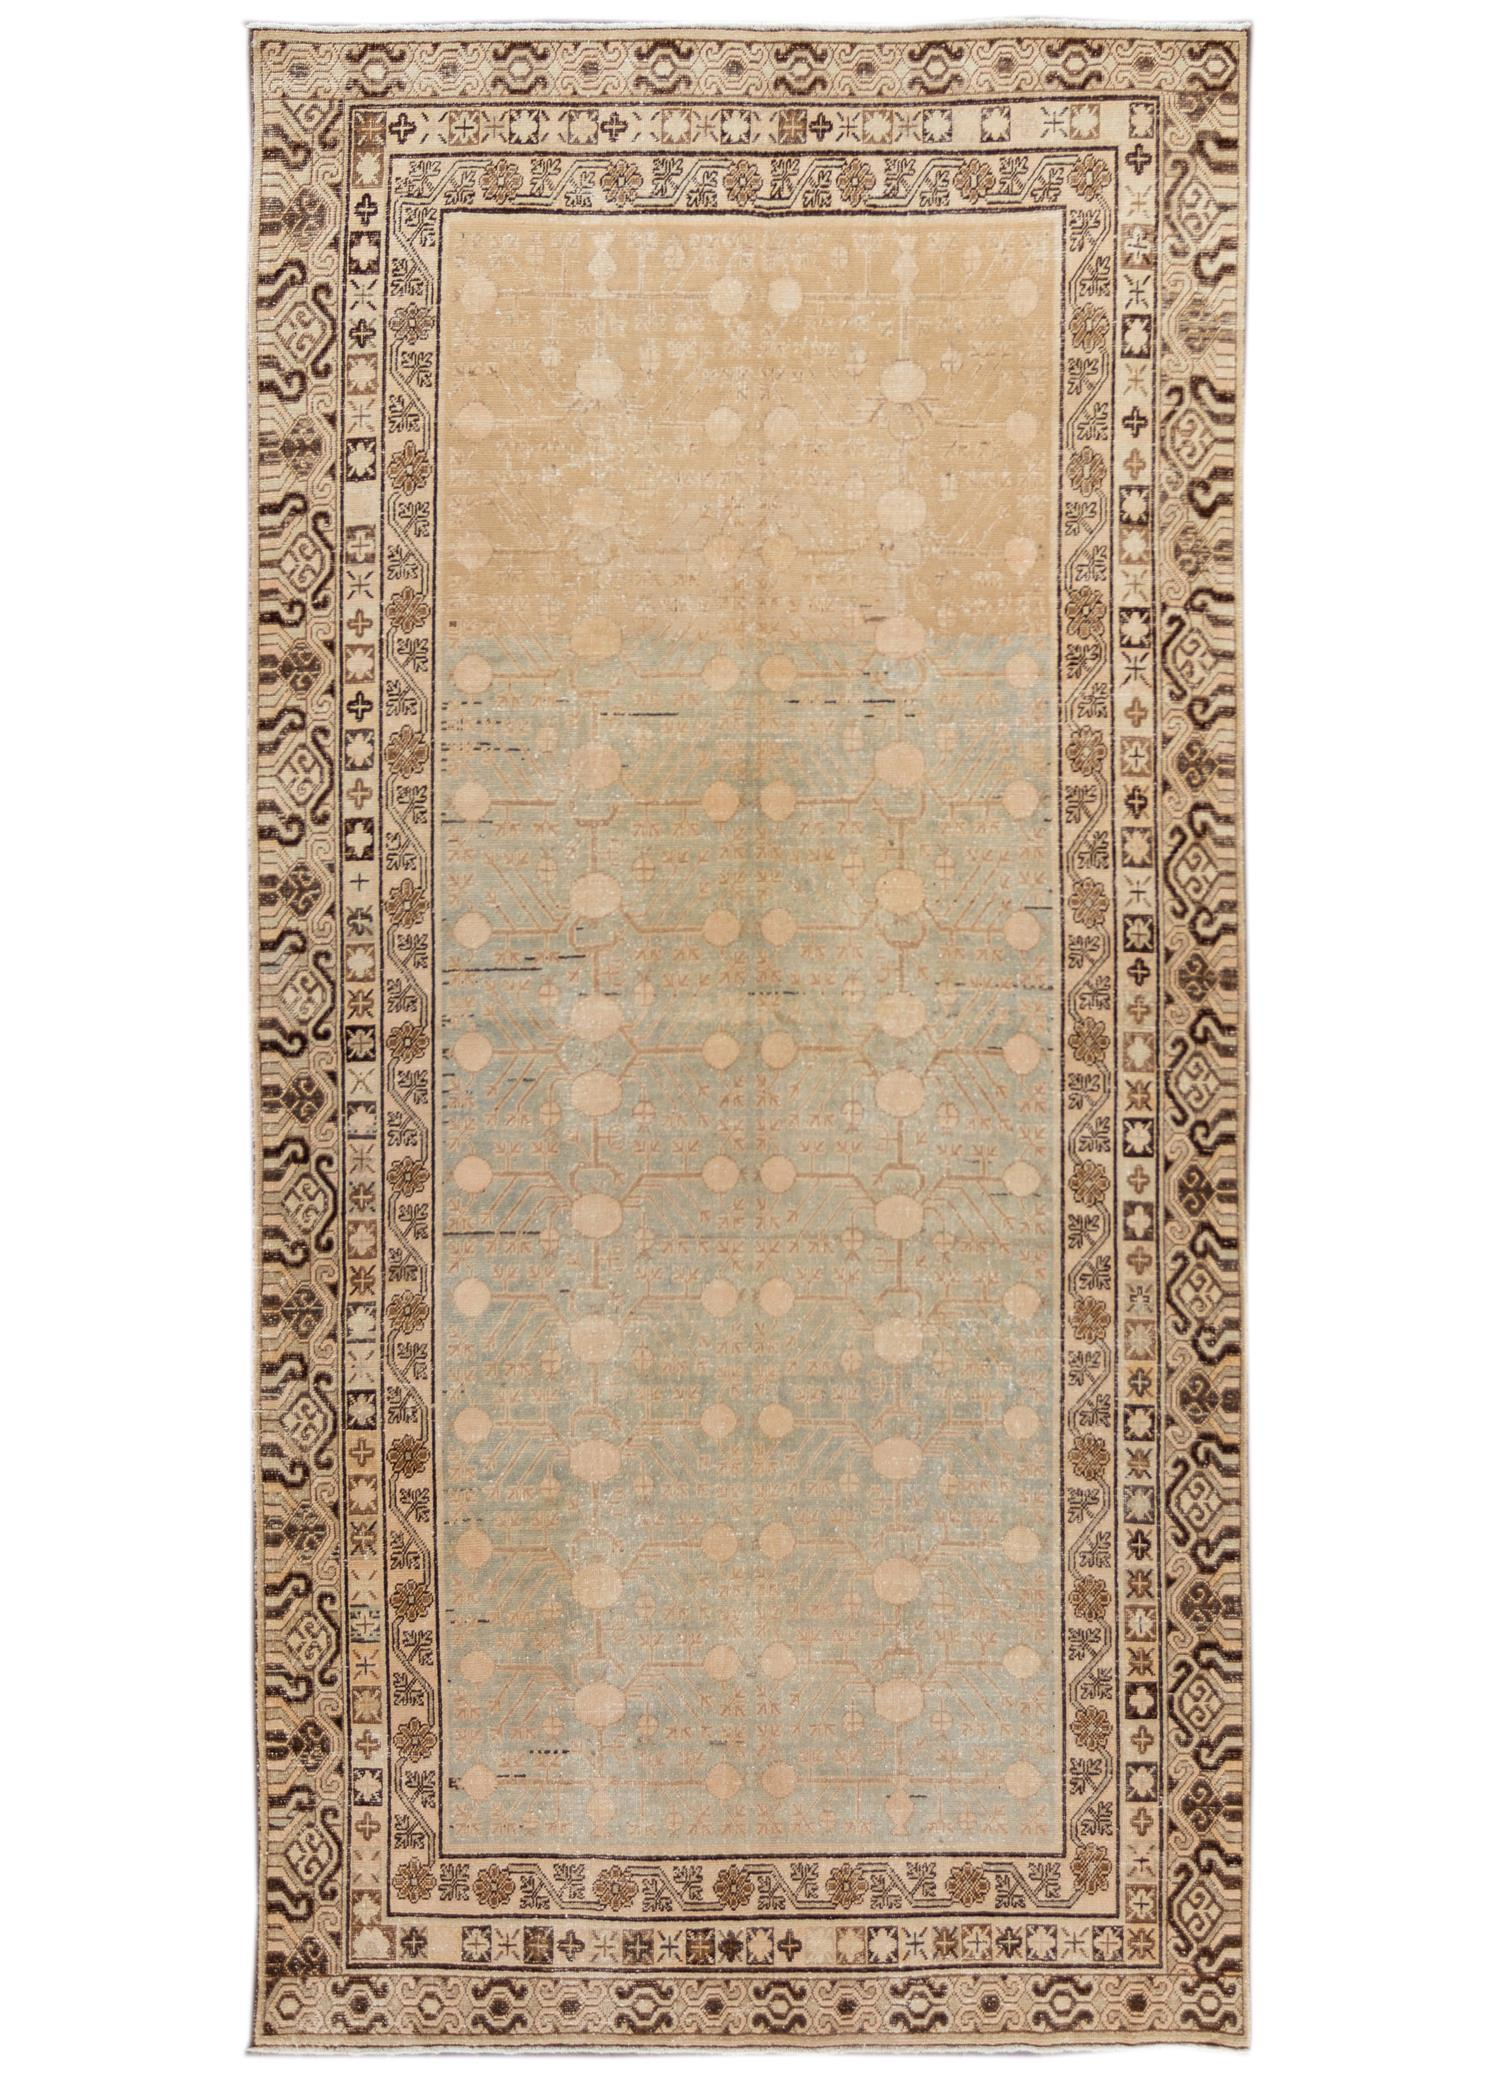 Antique Khotan Runner, #10235255, 6' x 12'